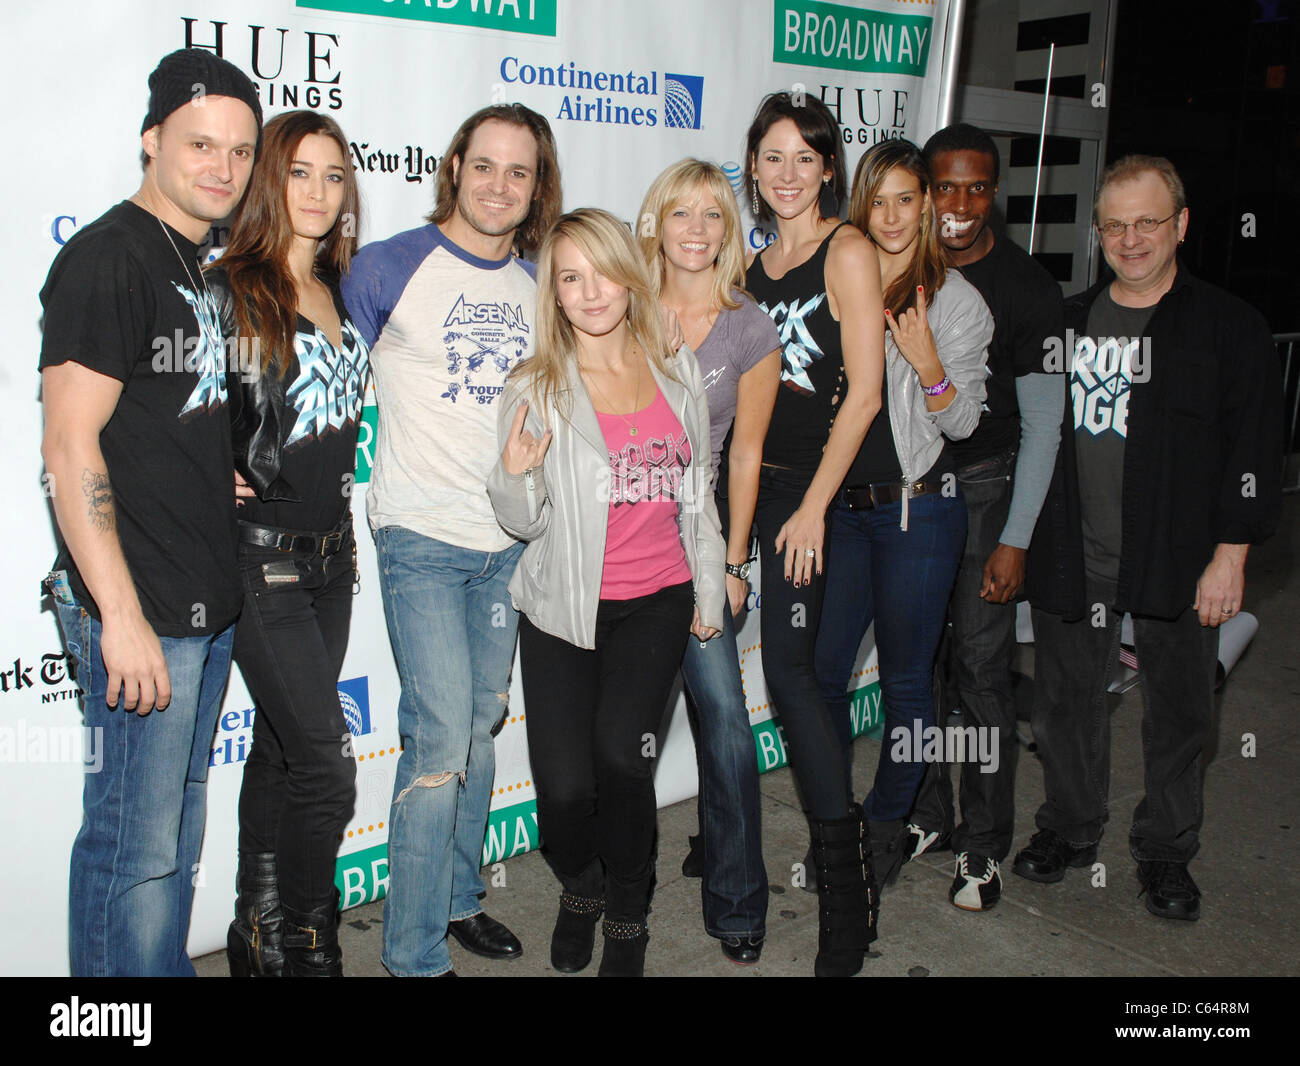 Cast members from Rock of Ages in attendance for Broadway on Broadway 2010 Concert Kick-Off, Times Square, New York, - Stock Image